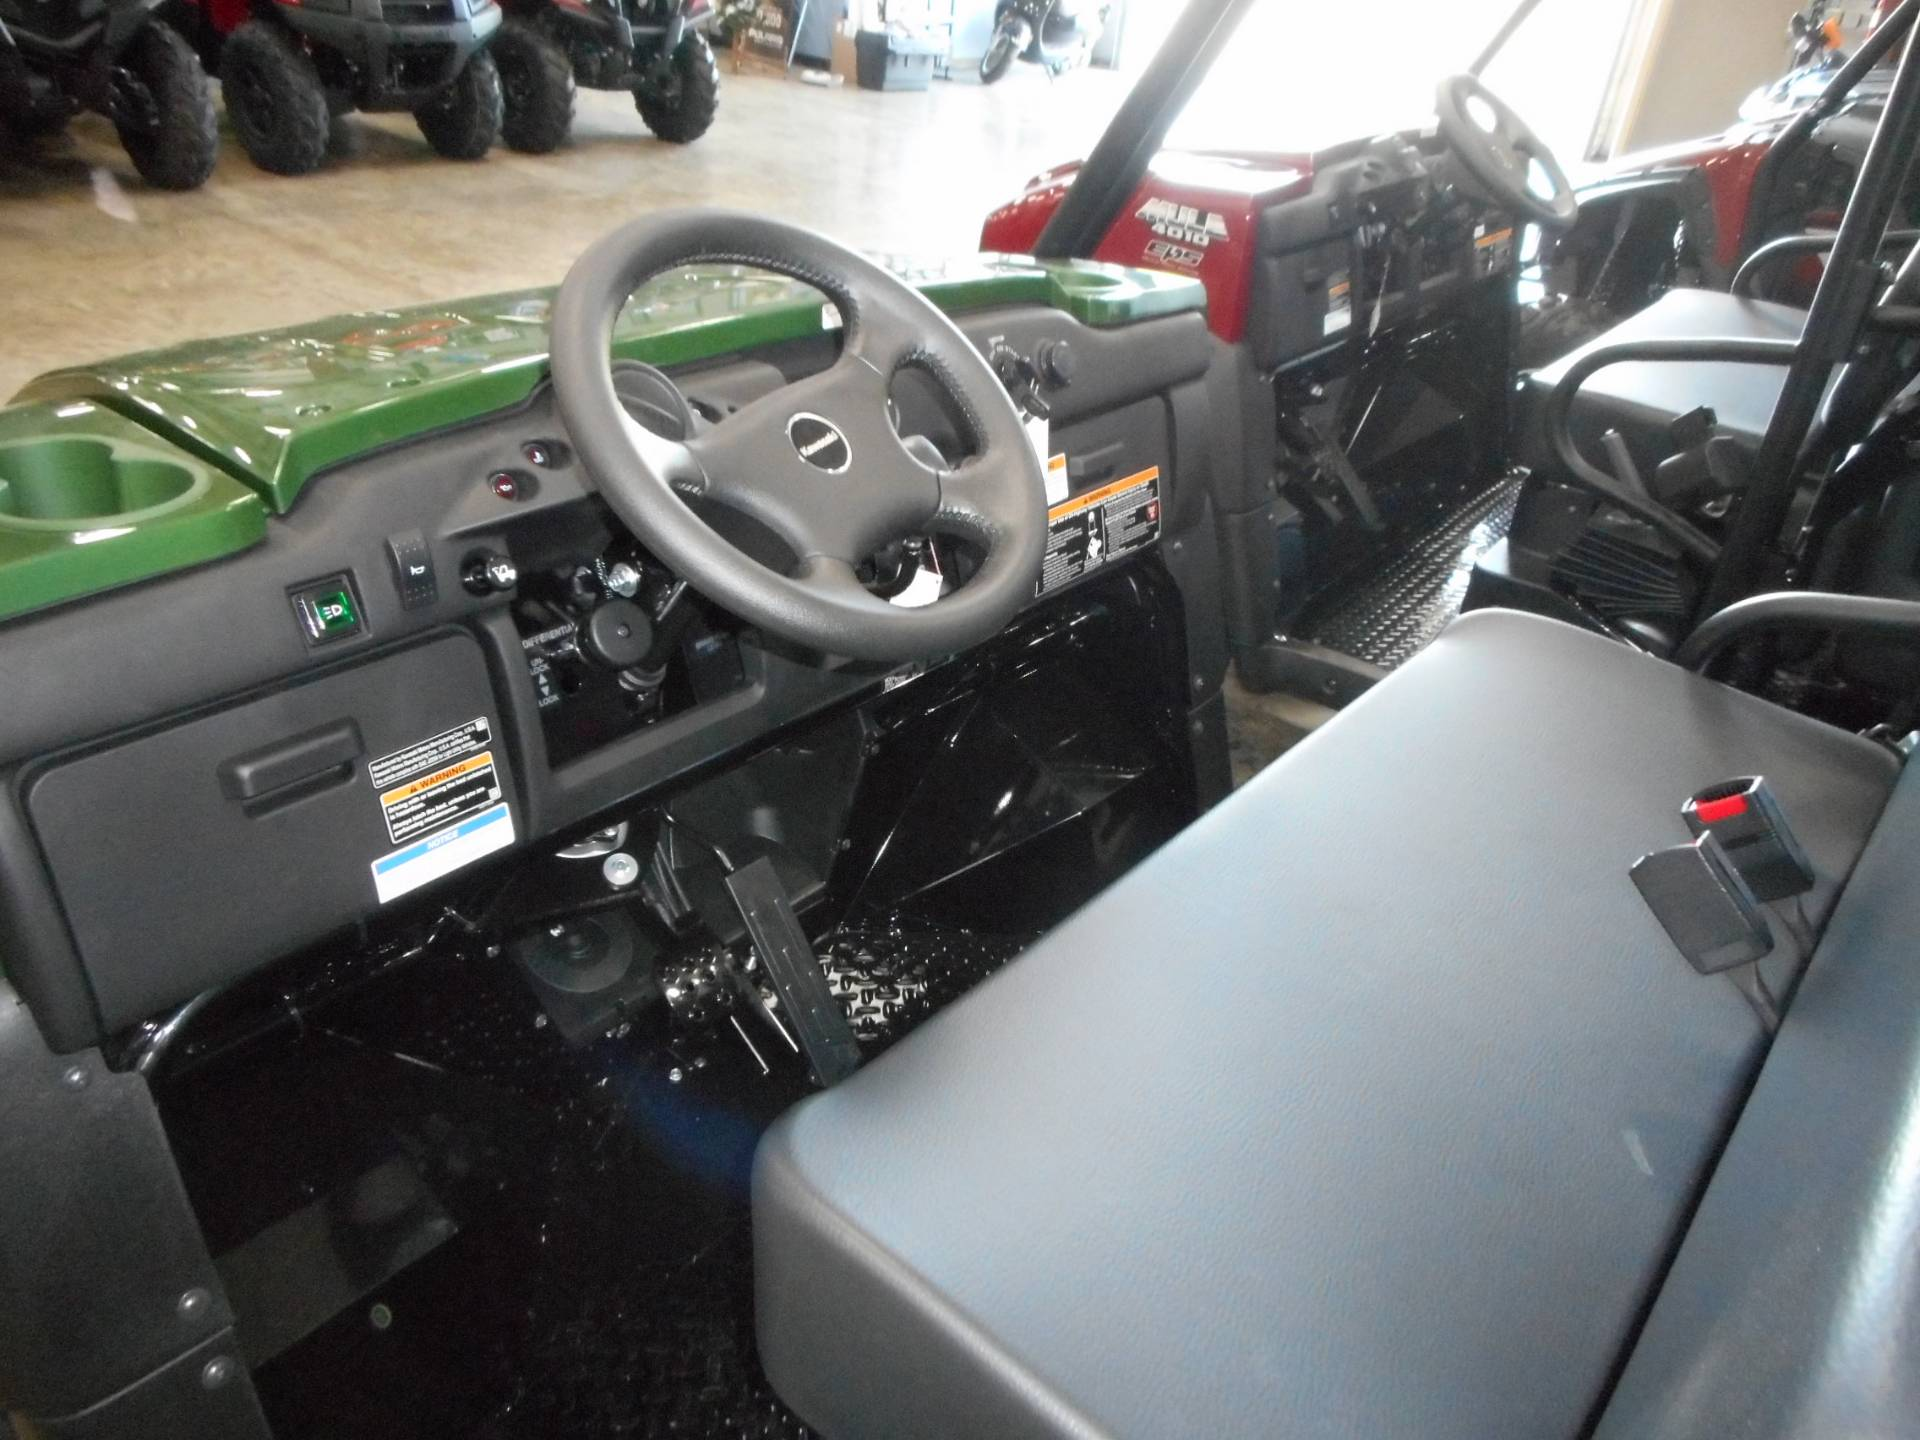 2020 Kawasaki Mule 4010 4x4 in Belvidere, Illinois - Photo 4